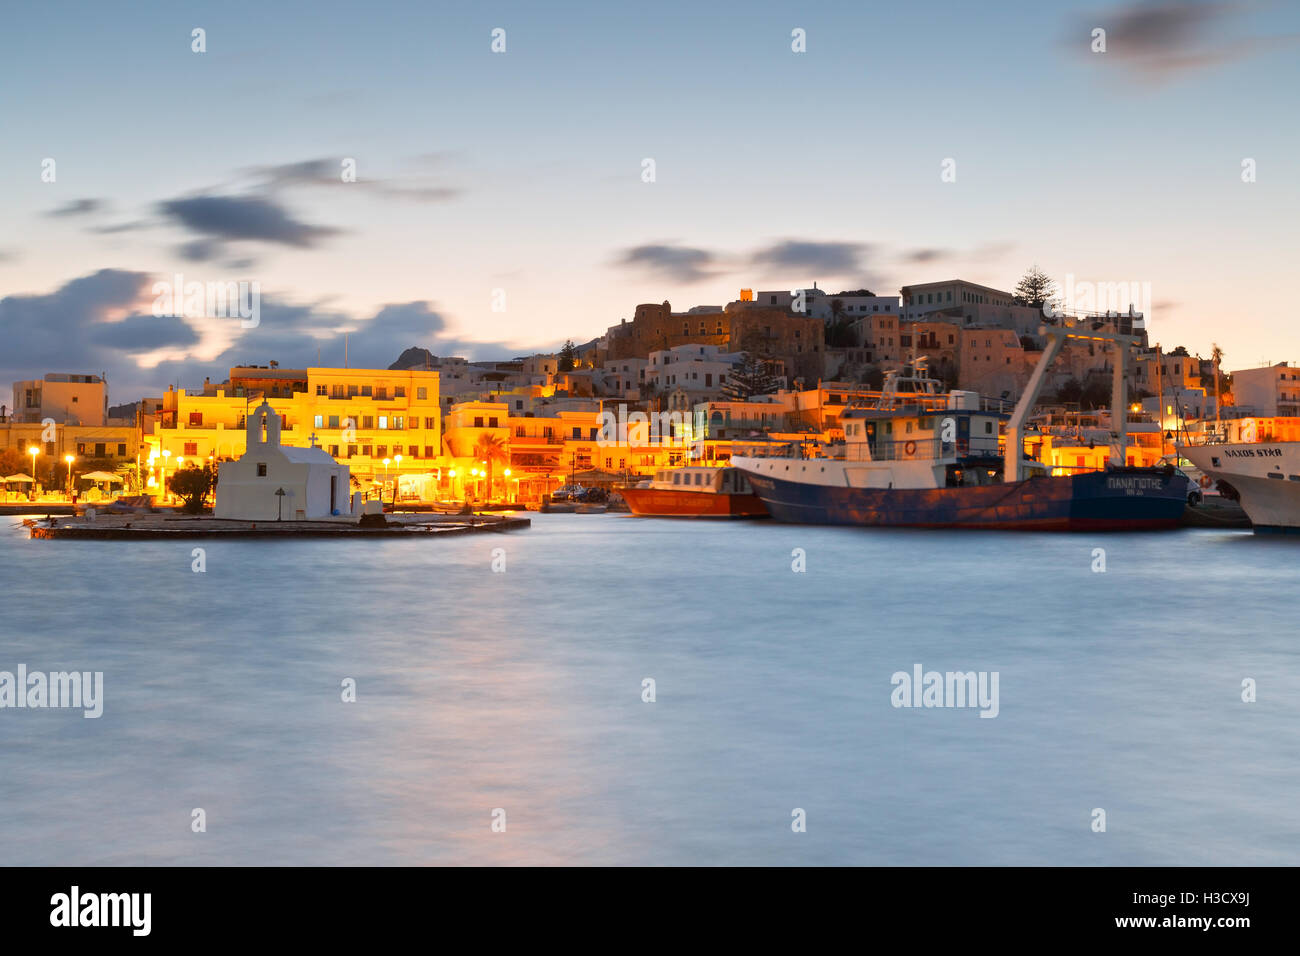 View of the Naxos town and its harbour. - Stock Image